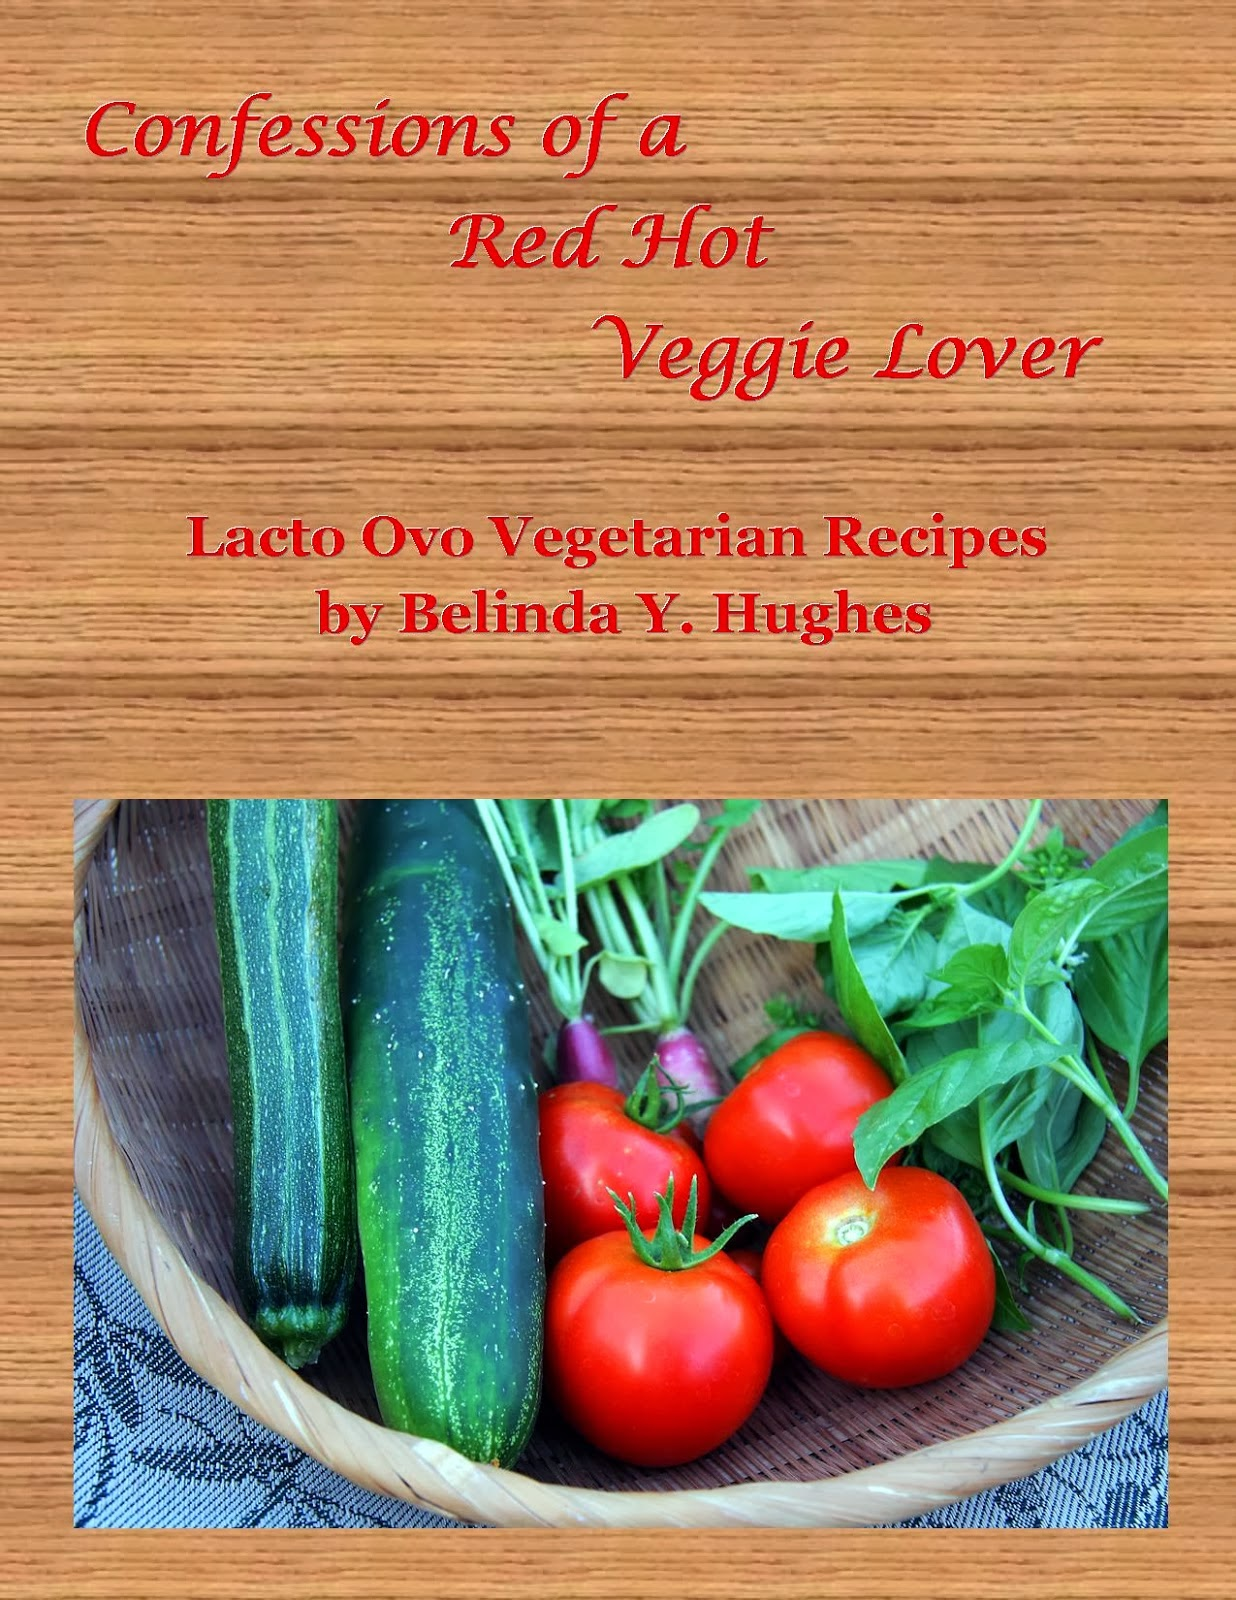 http://www.amazon.com/Confessions-Red-Hot-Veggie-Lover-ebook/dp/B00H4L35NM/ref=sr_1_1?s=books&ie=UTF8&qid=1395785754&sr=1-1&keywords=belinda+y.+hughes